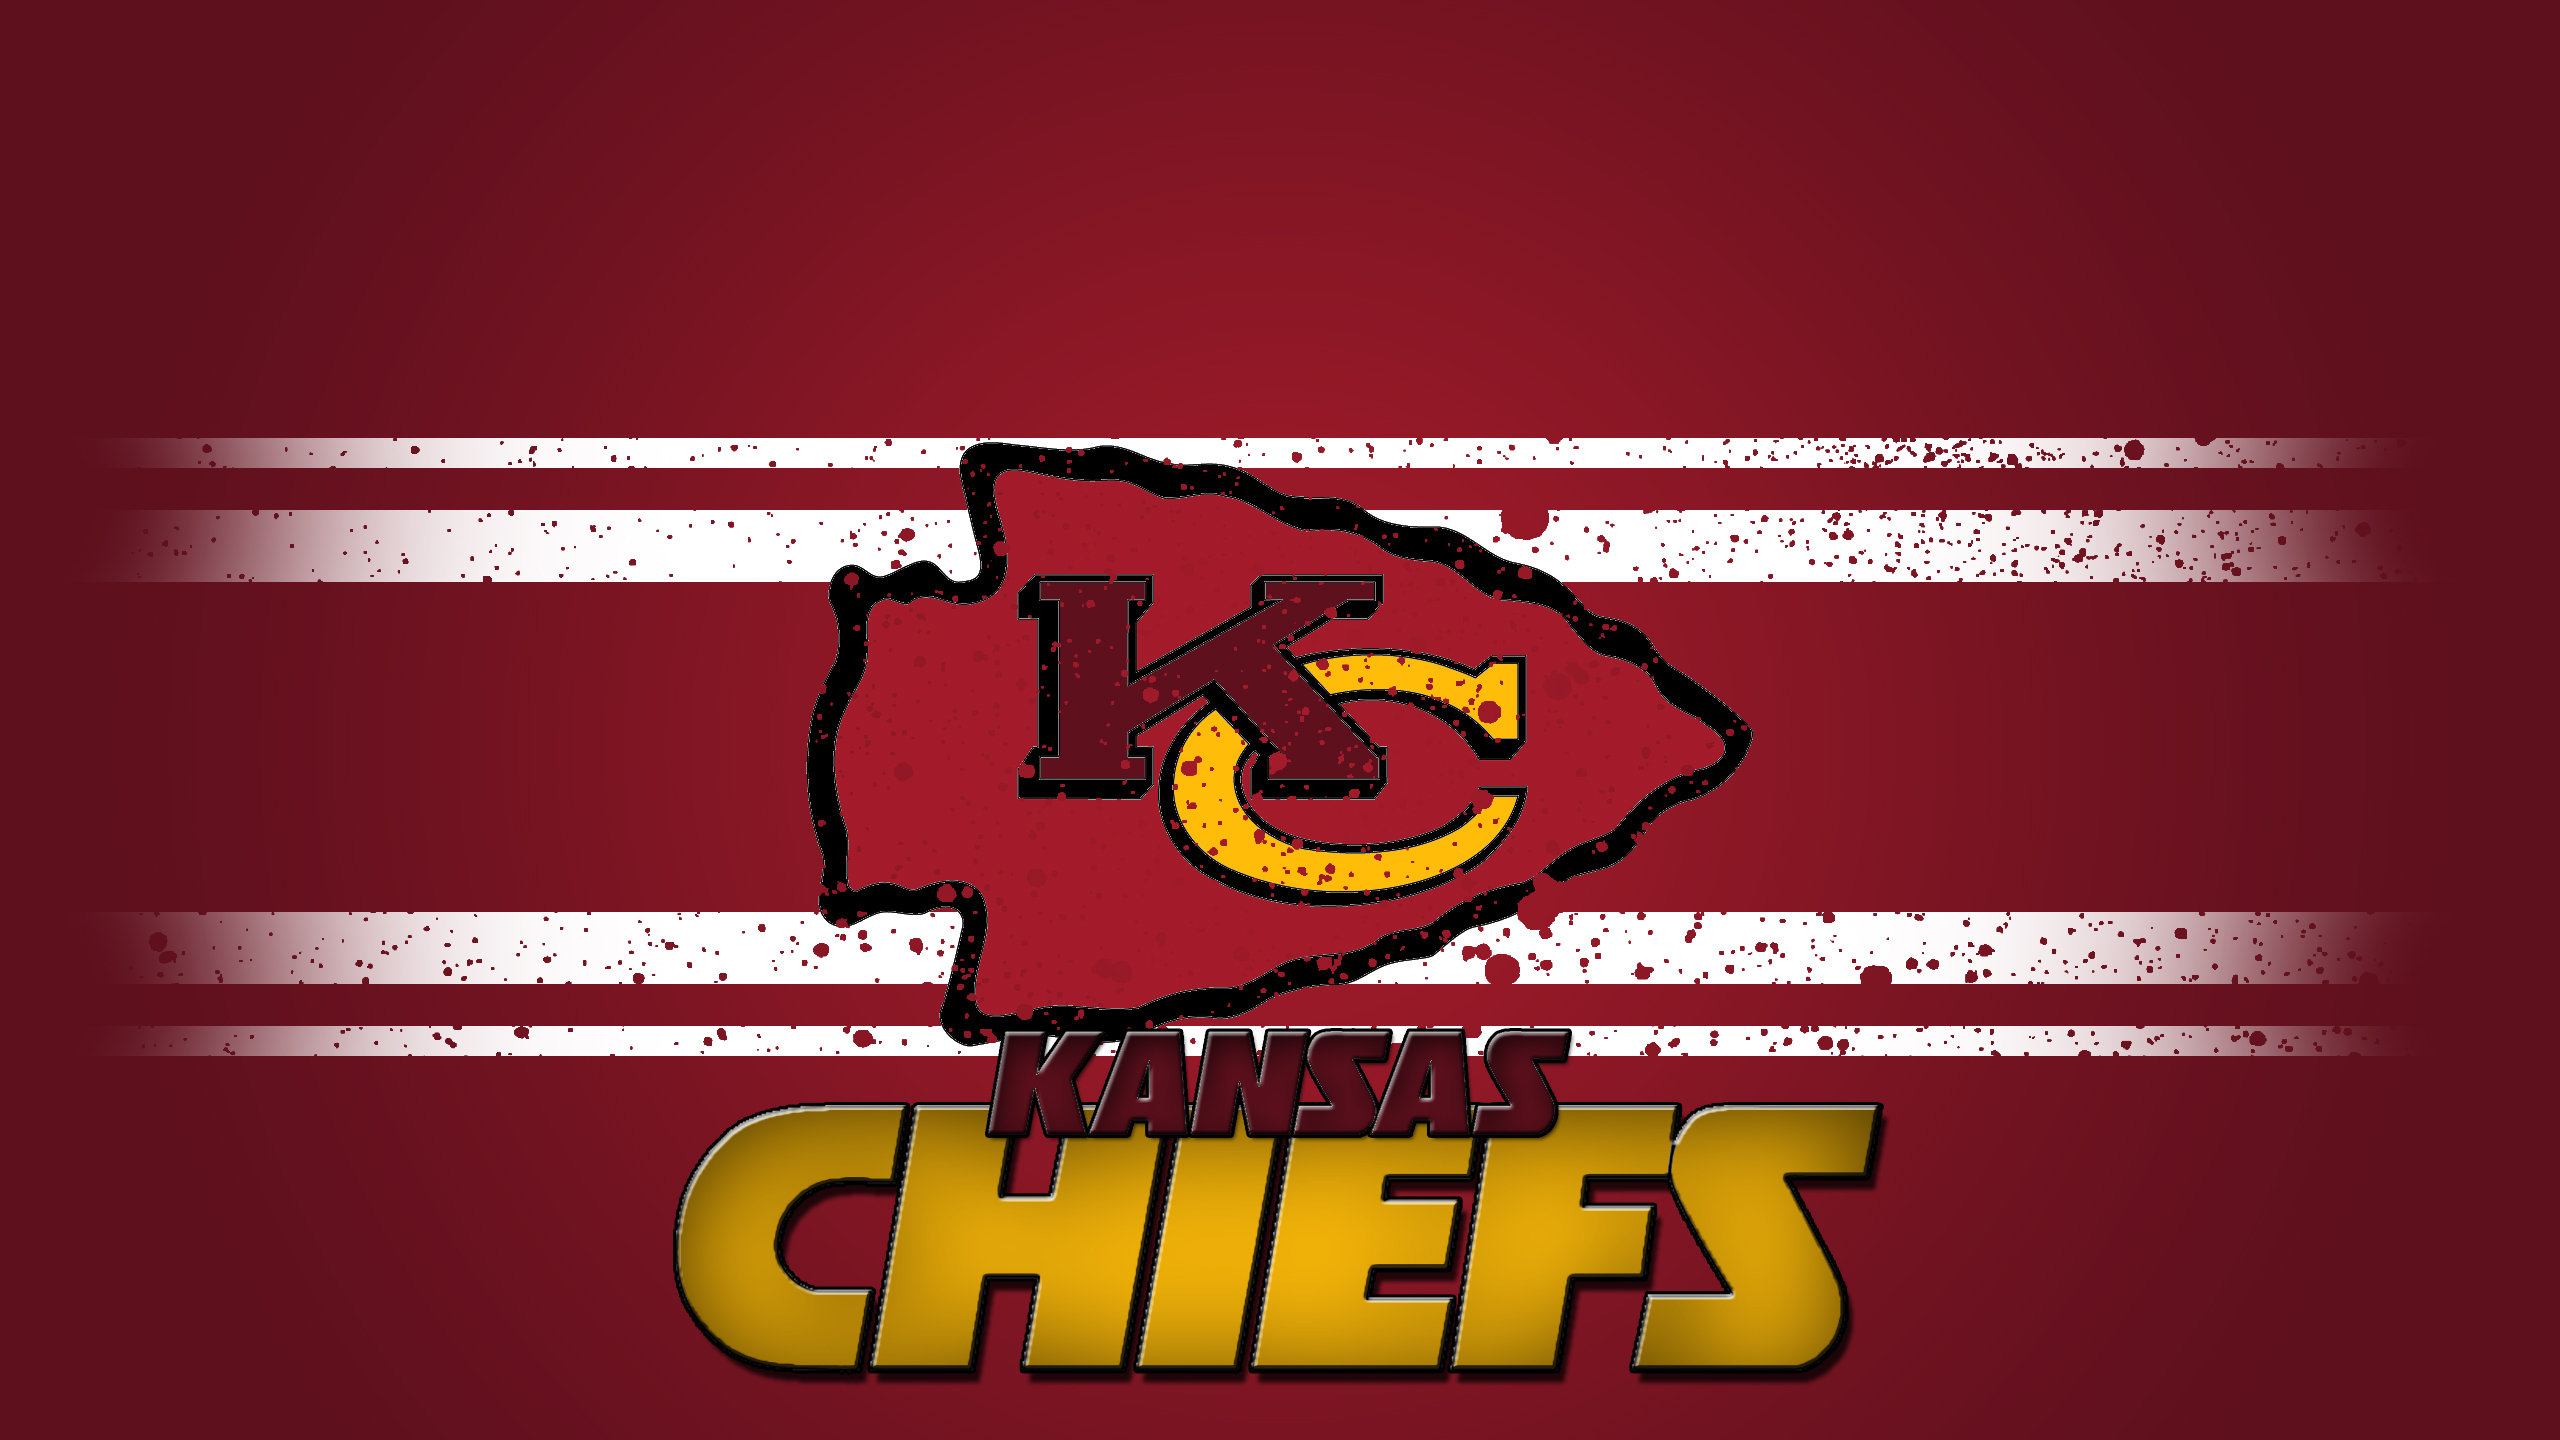 Kansas City Chiefs By Beaware8 On Deviantart